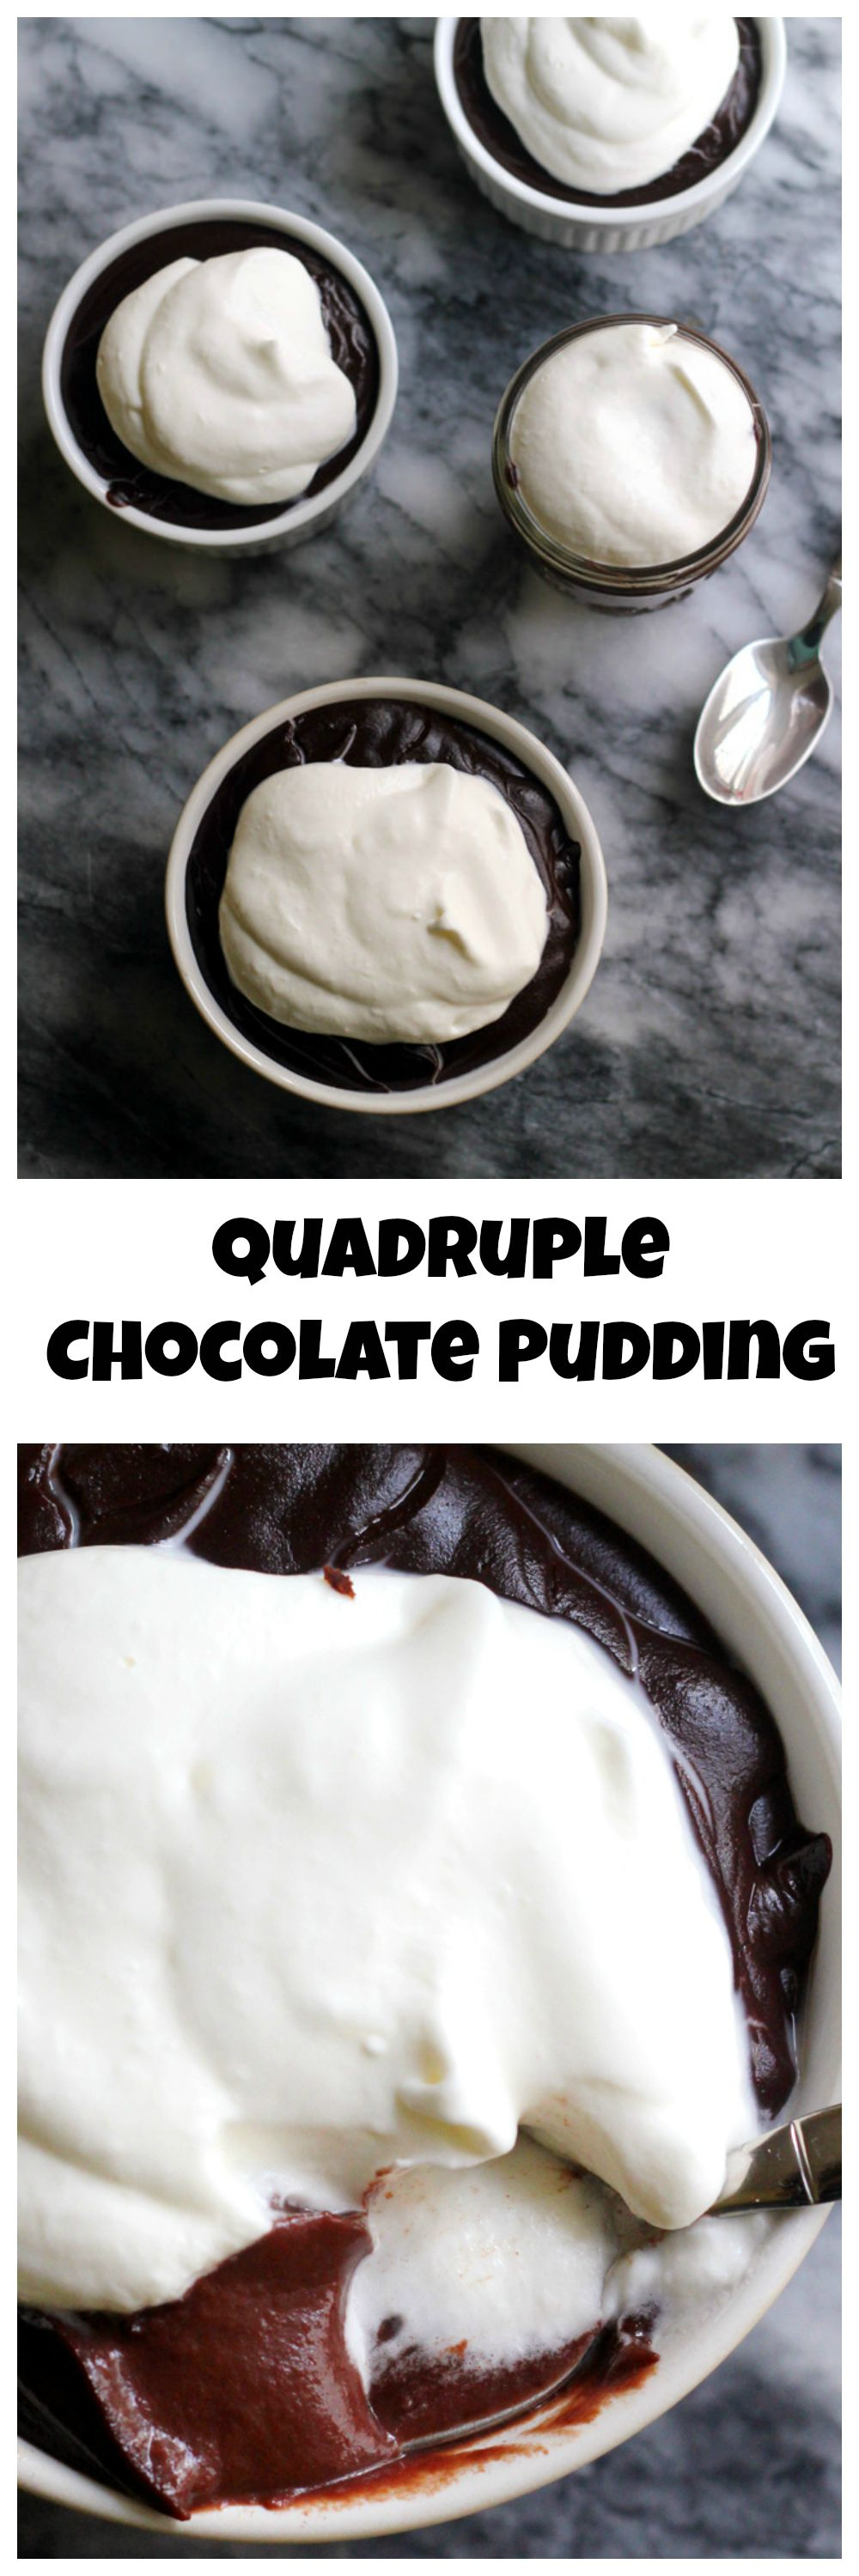 Chocolate lovers, gather round, because this quadruple-chocolate chocolate pudding is rich, delightful, and like music to your taste buds!